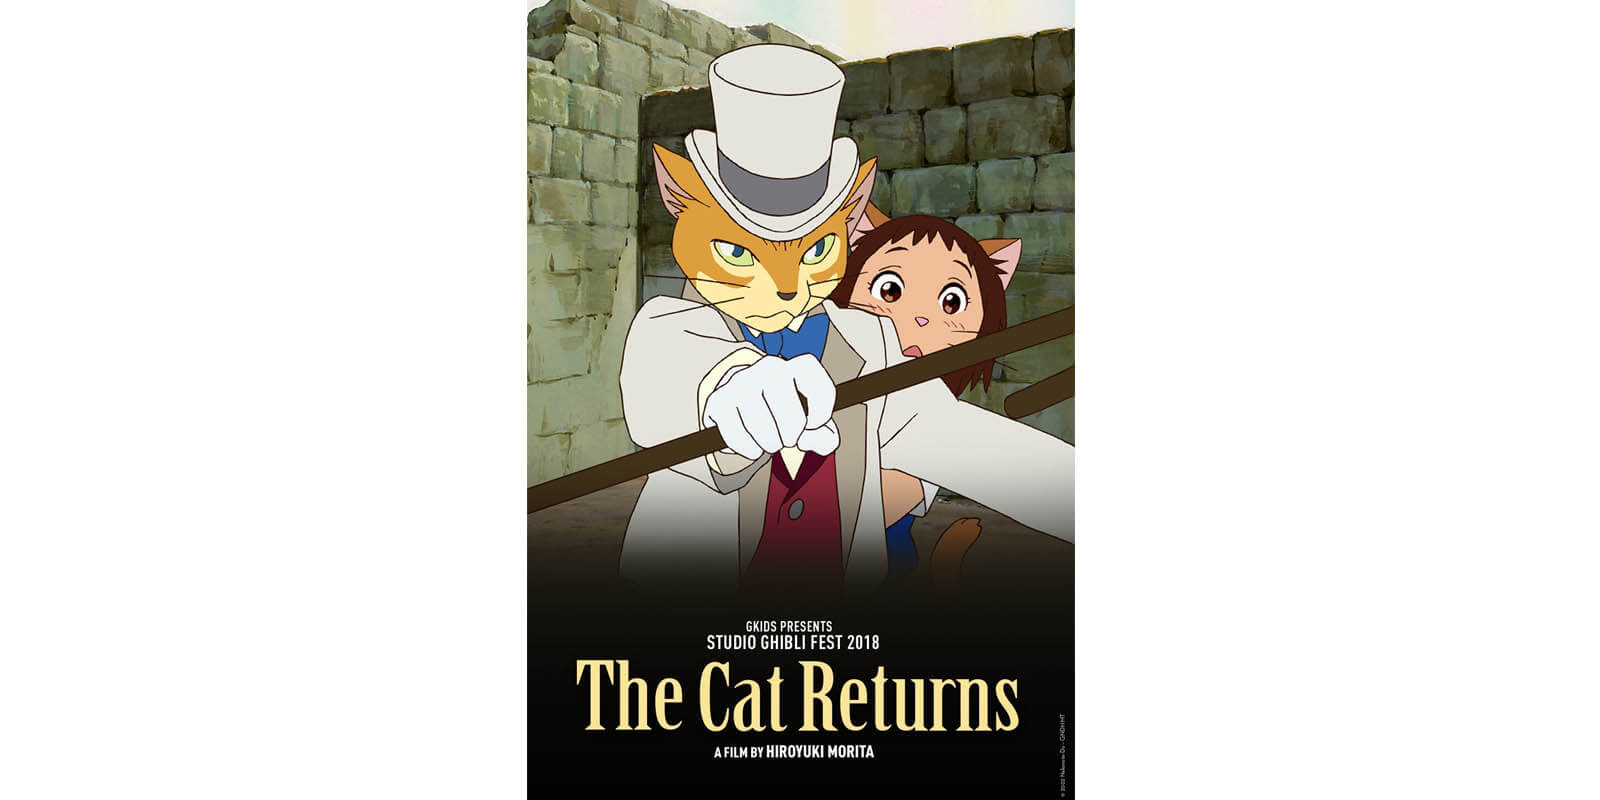 The Cat Returns (Studio Ghibli Fest 2018)